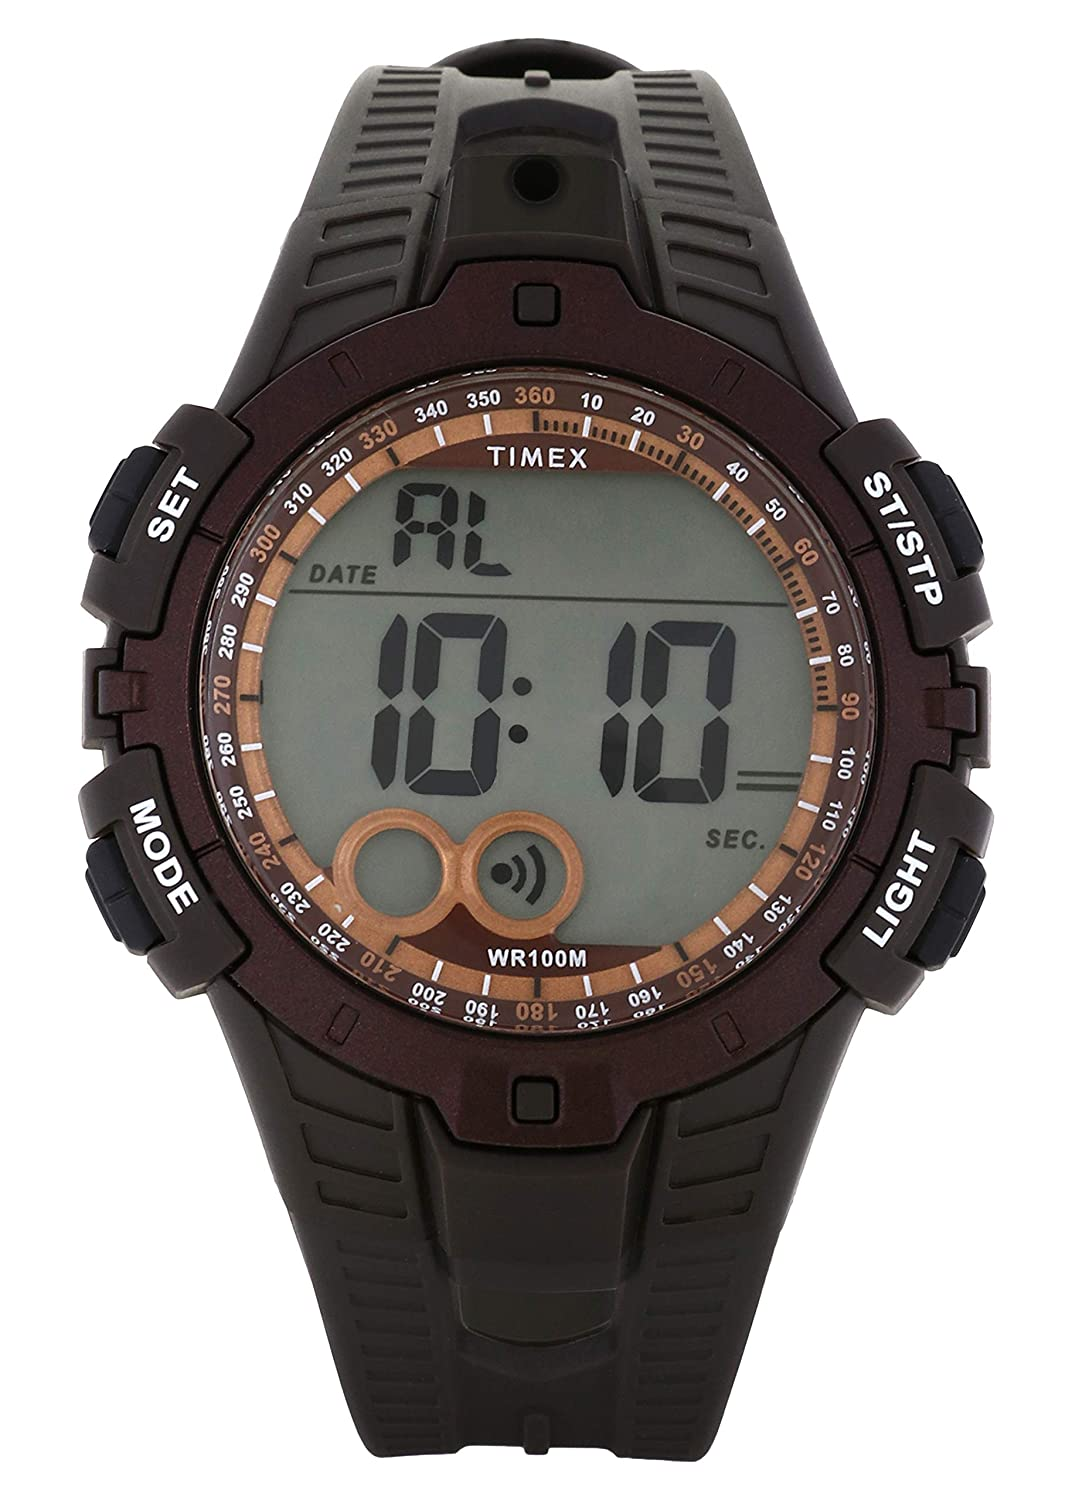 Timex Best Digital Watches under 2000 that are Worth Buying in India